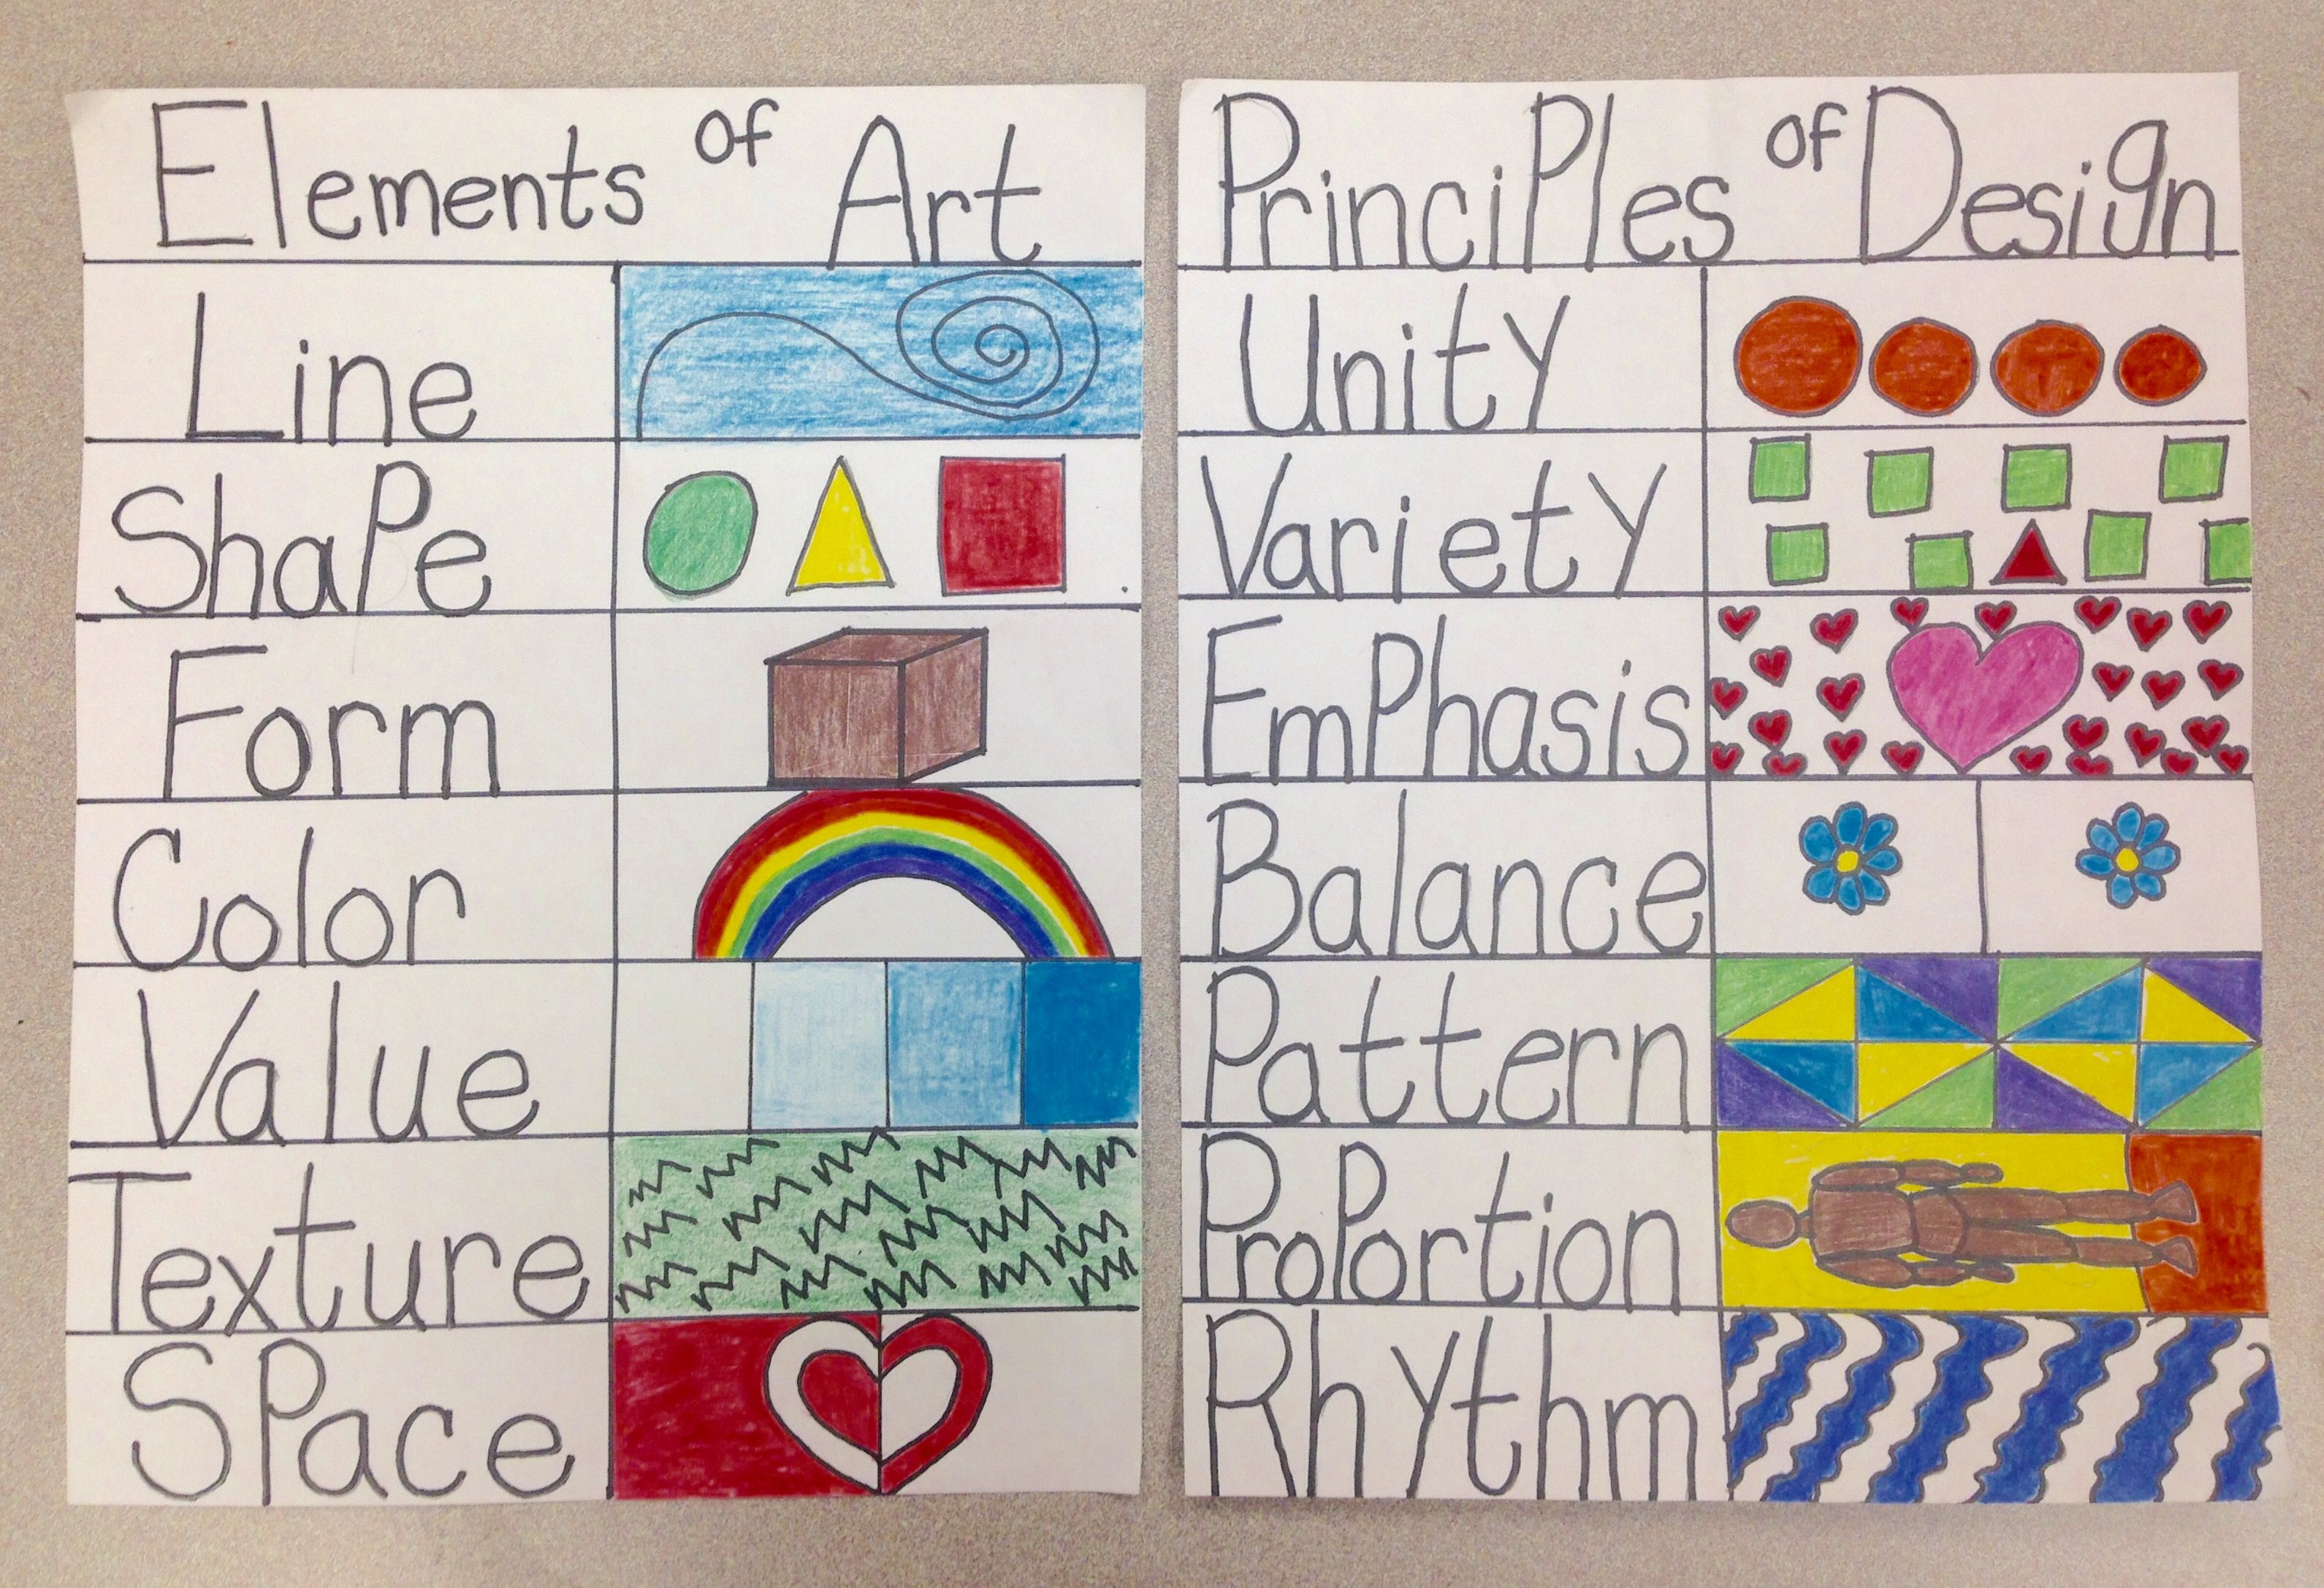 Elements Of Art And Principles Of Design Graphic Charts Project